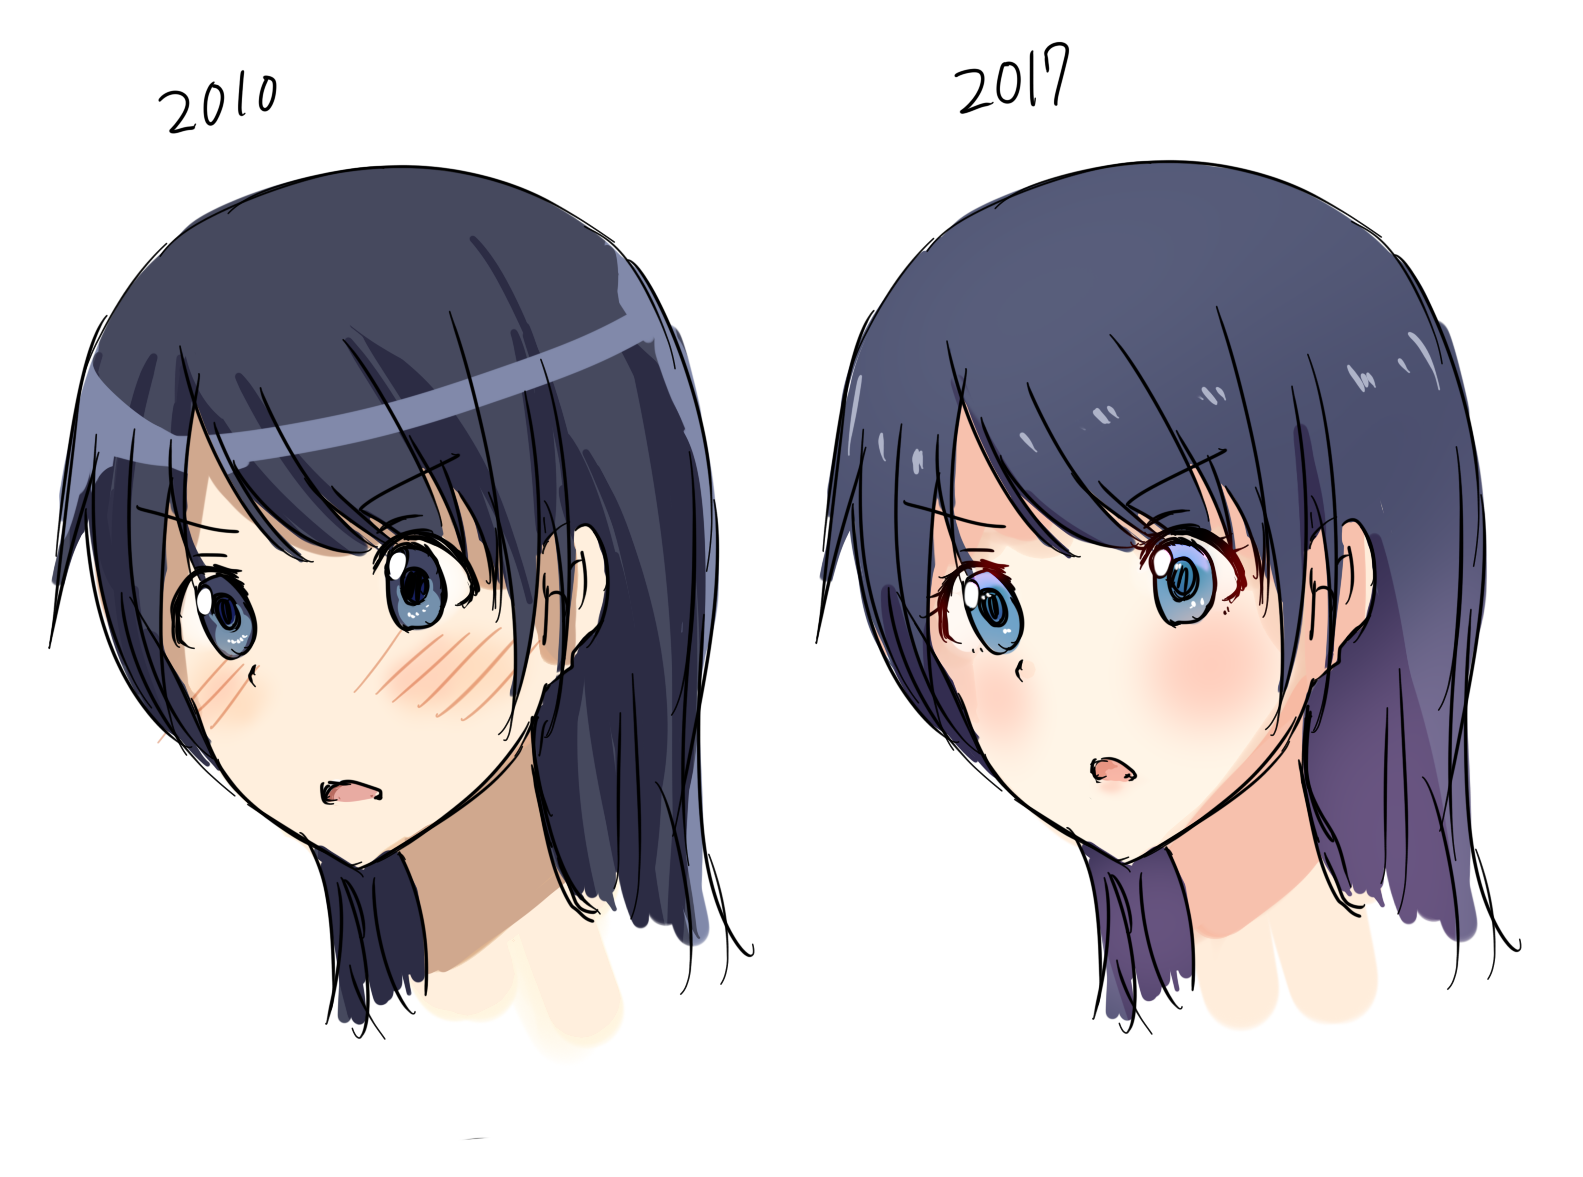 How anime art has changed since 2010